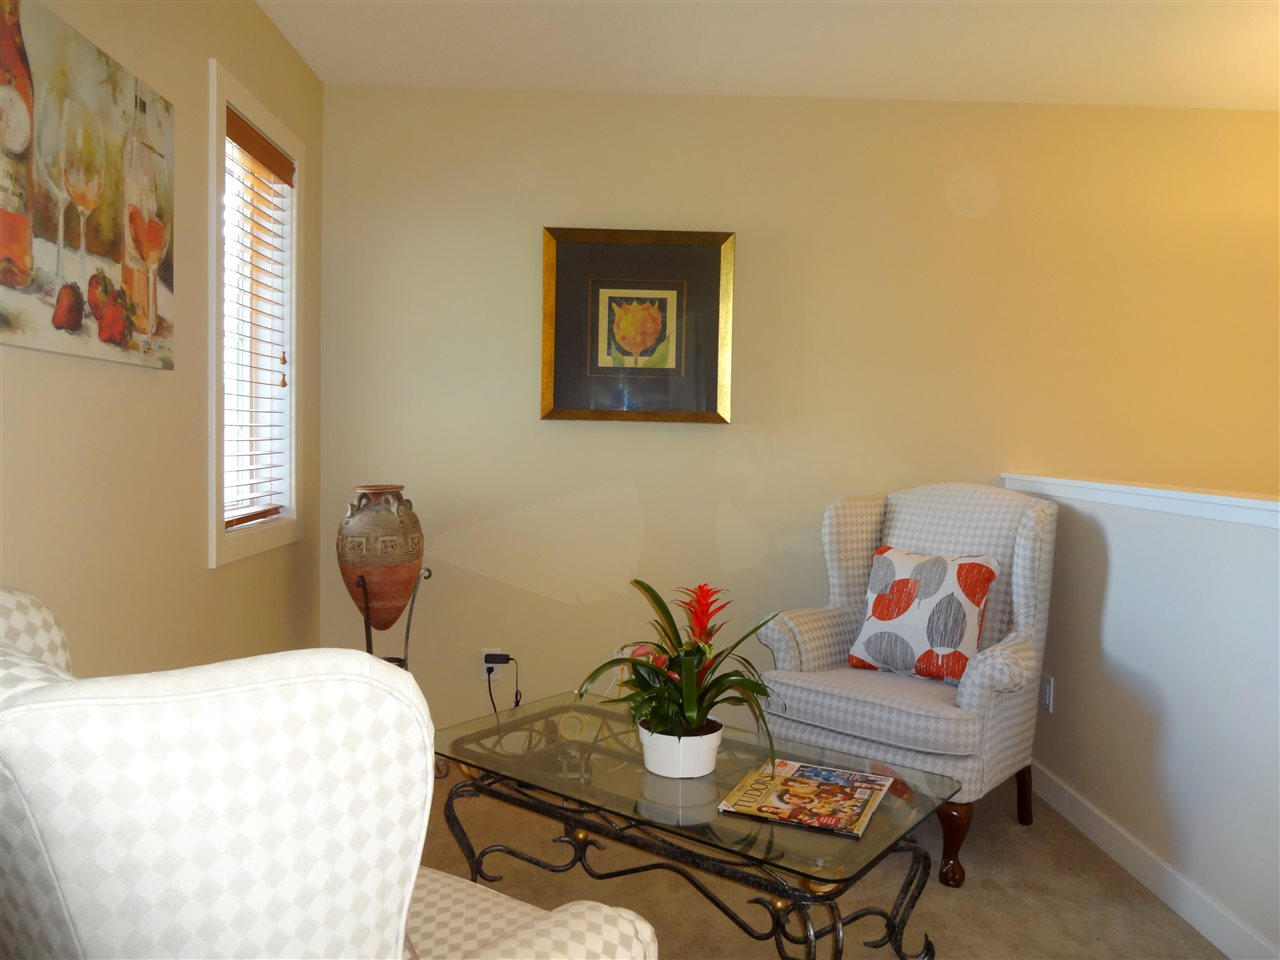 Cozy and Quiet....perfect area for relaxing or reading a book in this quaint loft on the upper level.